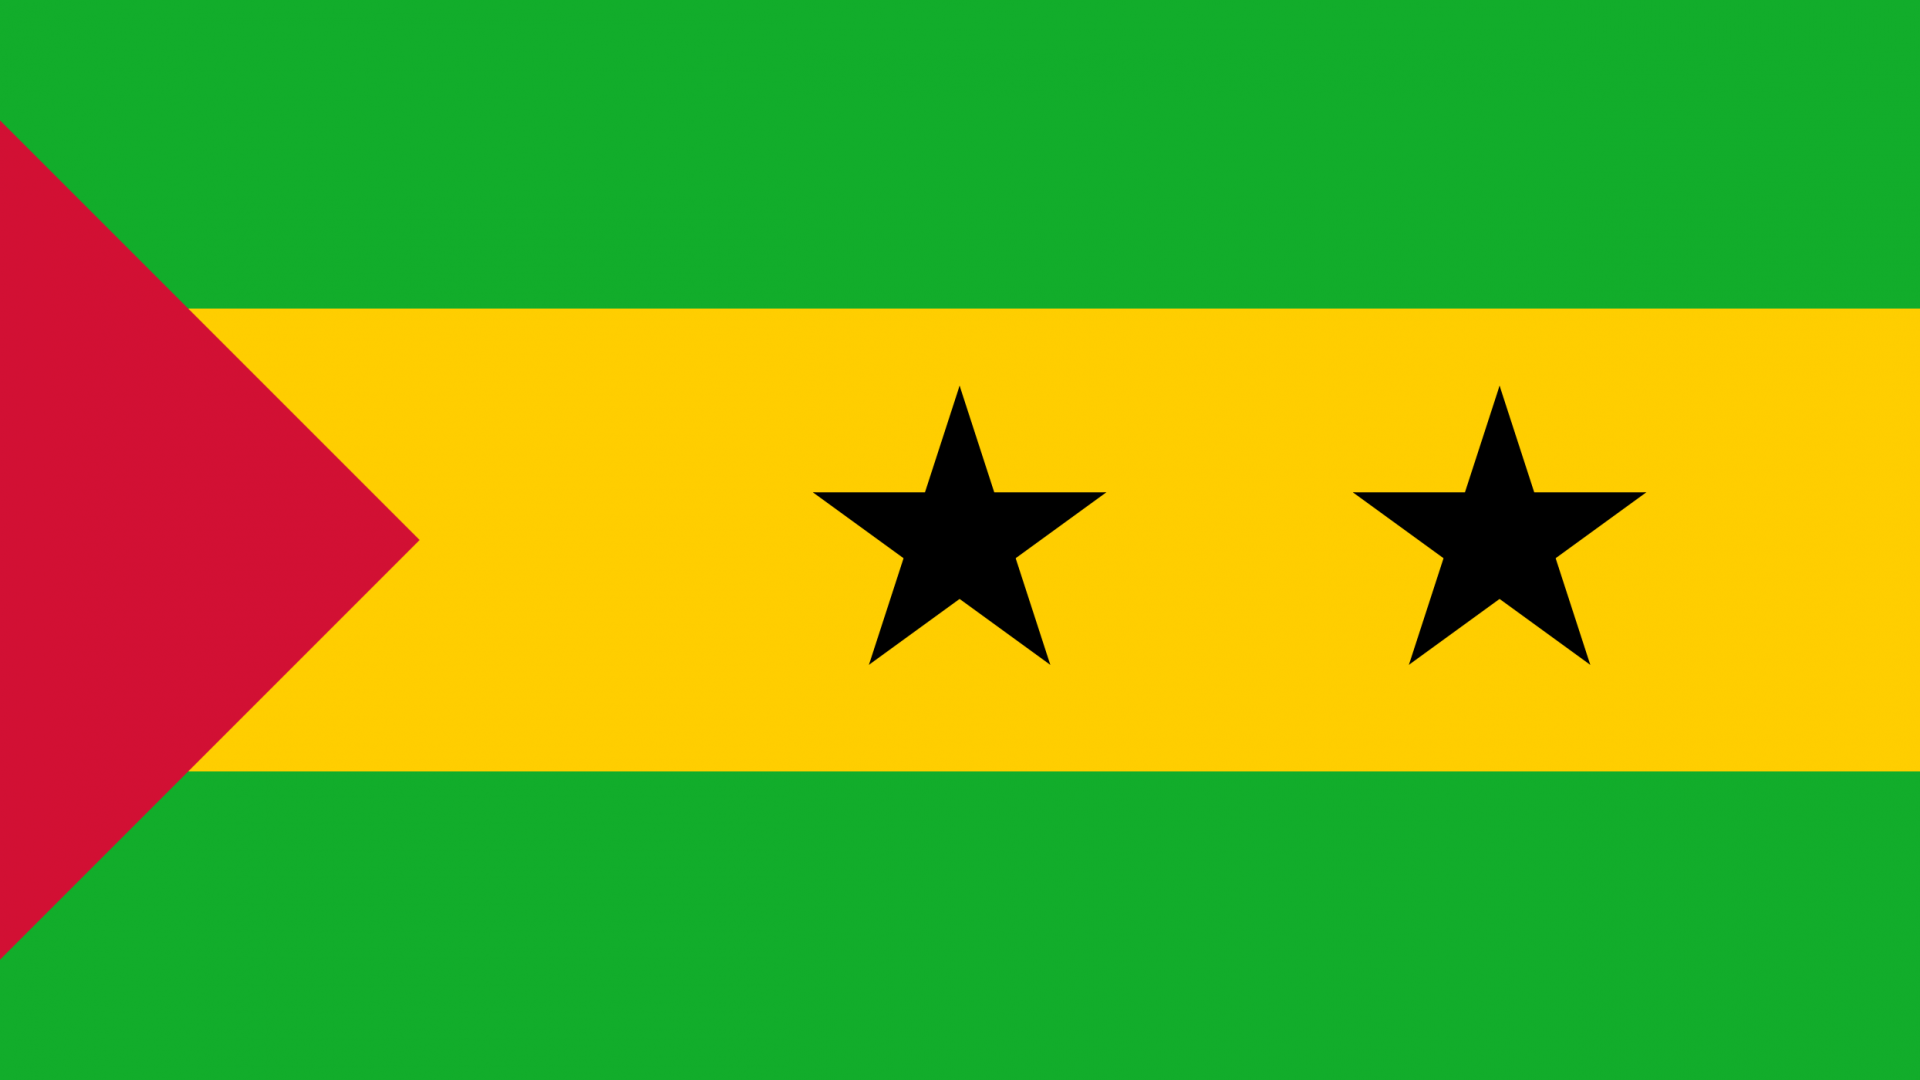 Wallpaper: Sao Tome and Principe Flag